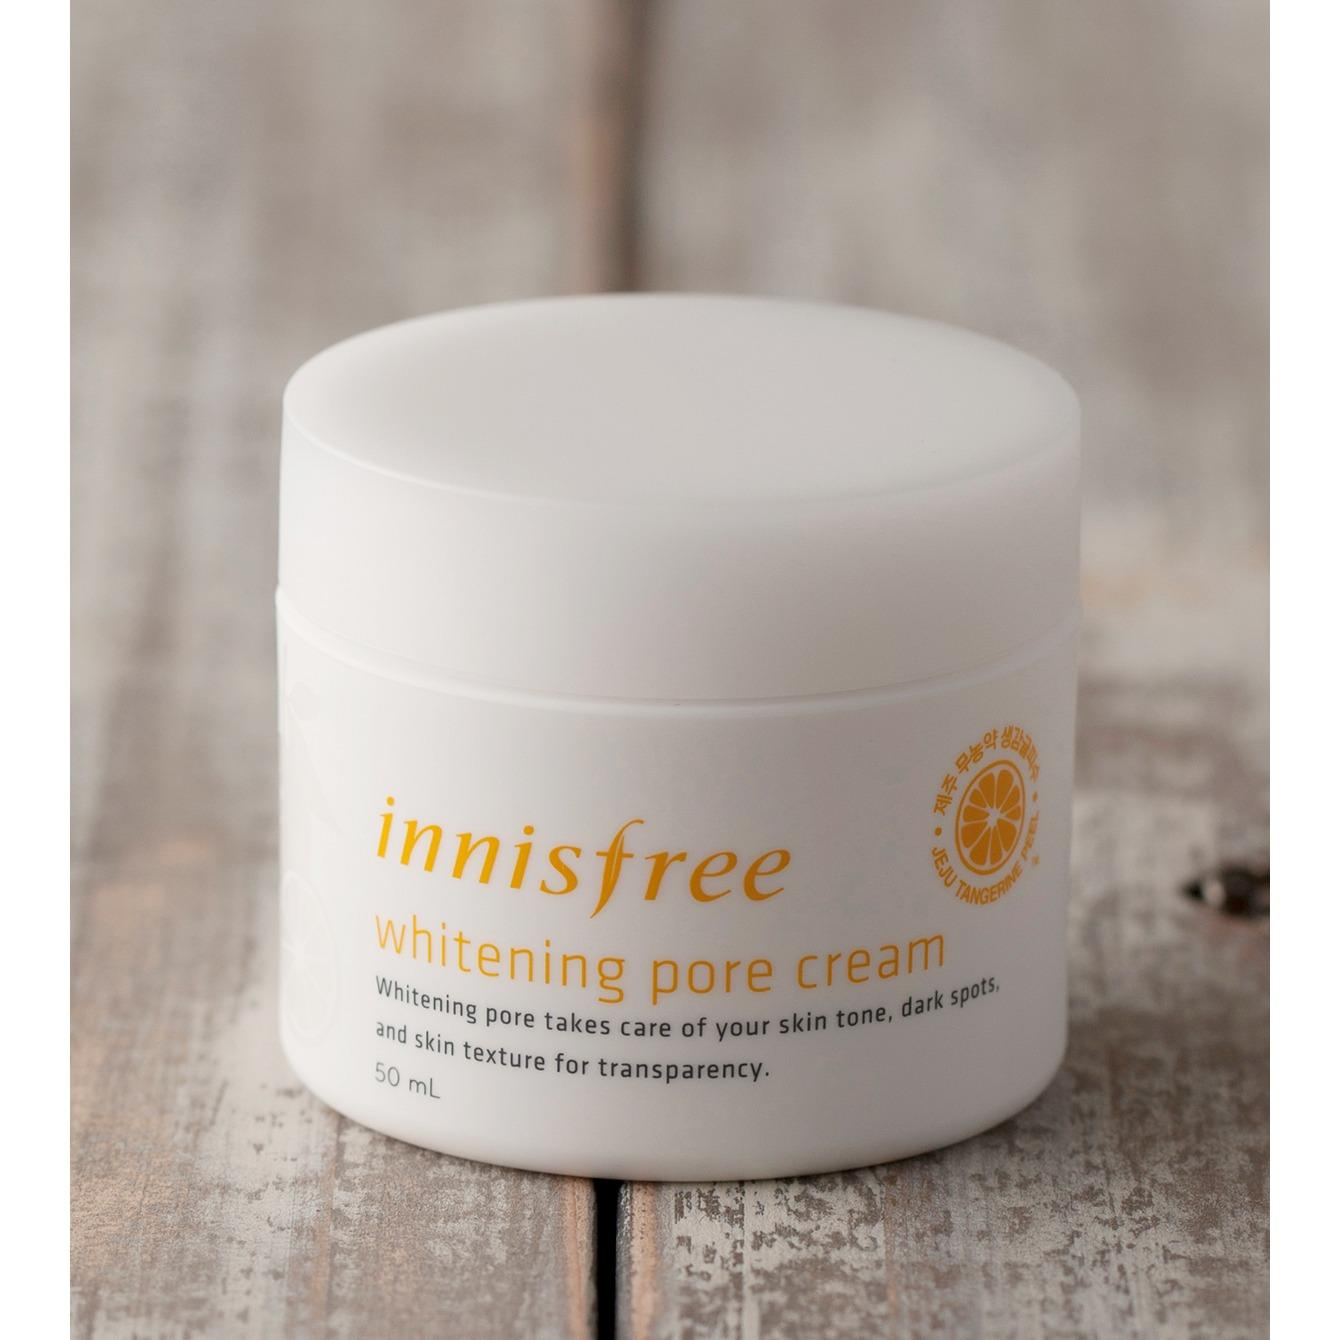 ... Innisfree Whitening Pore Cream 50ml. Innisfree Whitening Pore Cream 50ml. Cream Salep Walet Fluocinonide Salep Segala Penyakit Kulit ...